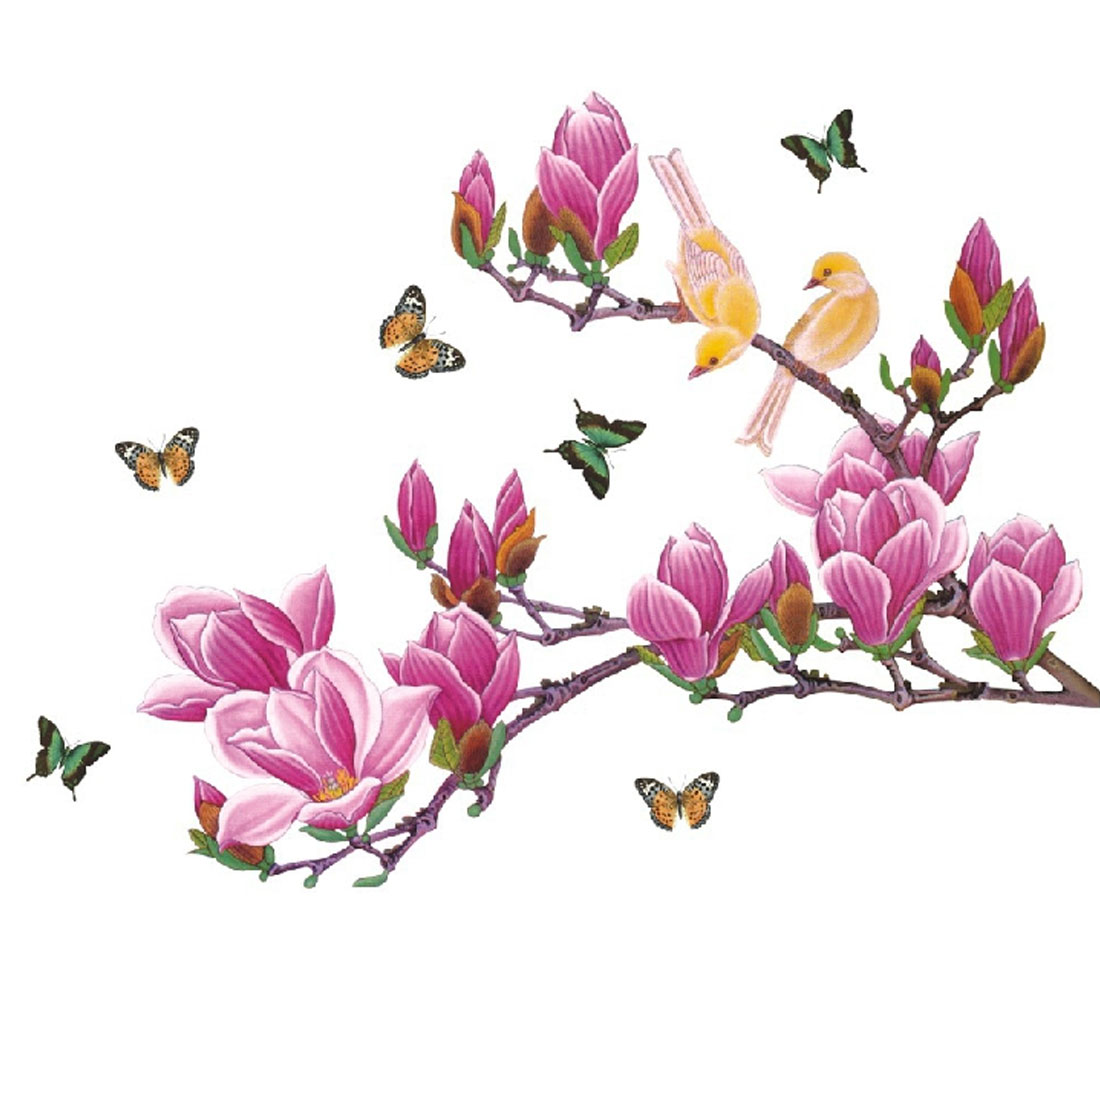 Home Bedroom PVC Bird Butterfly Pattern Self-adhesive Wall Sticker Decal Decoration Multicolor